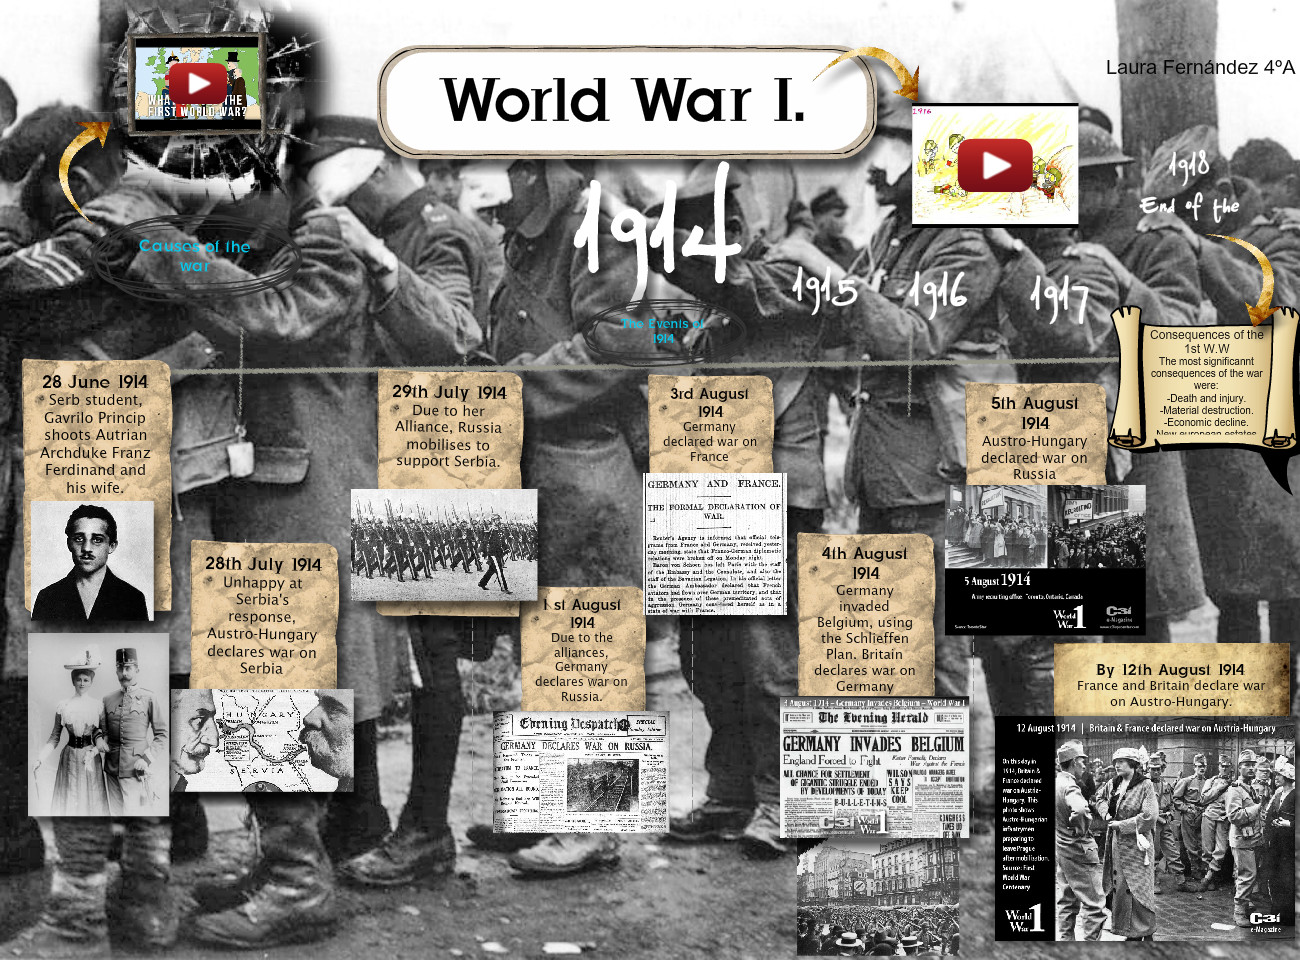 World War I.